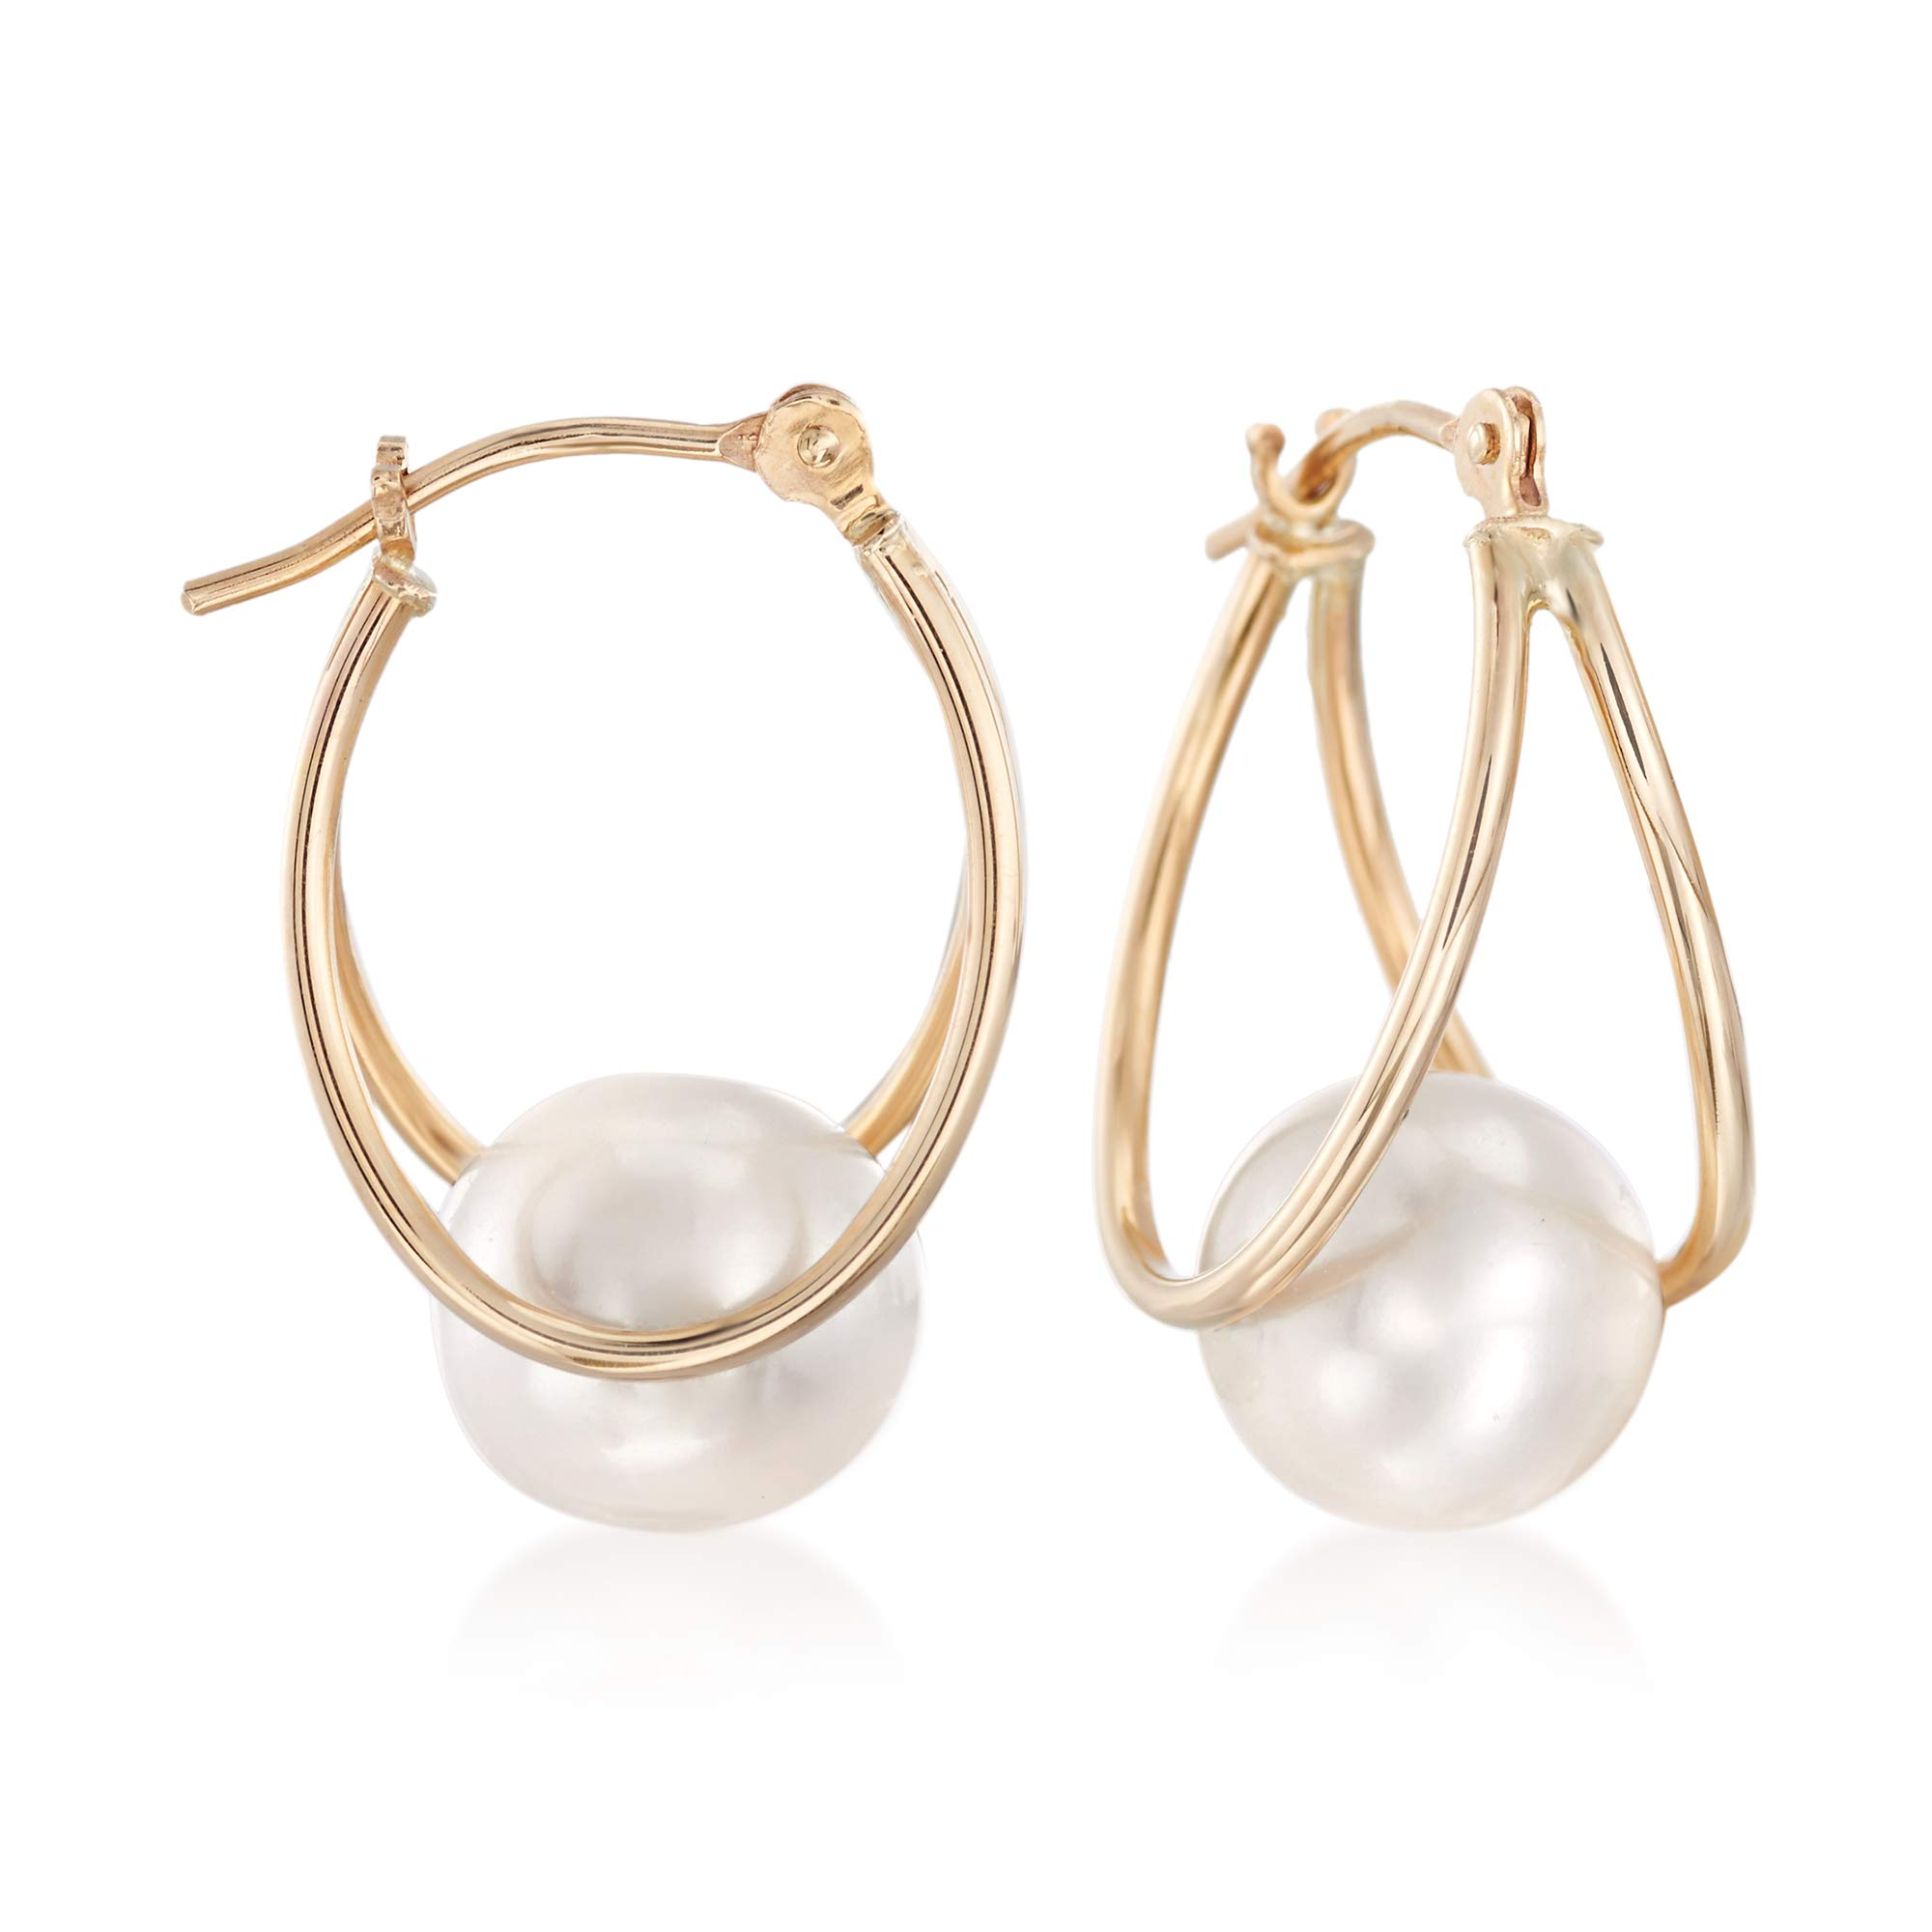 Ross-Simons 8-9mm Cultured Pearl Double Hoop Earrings (14k Yellow Gold) by Ross-Simons